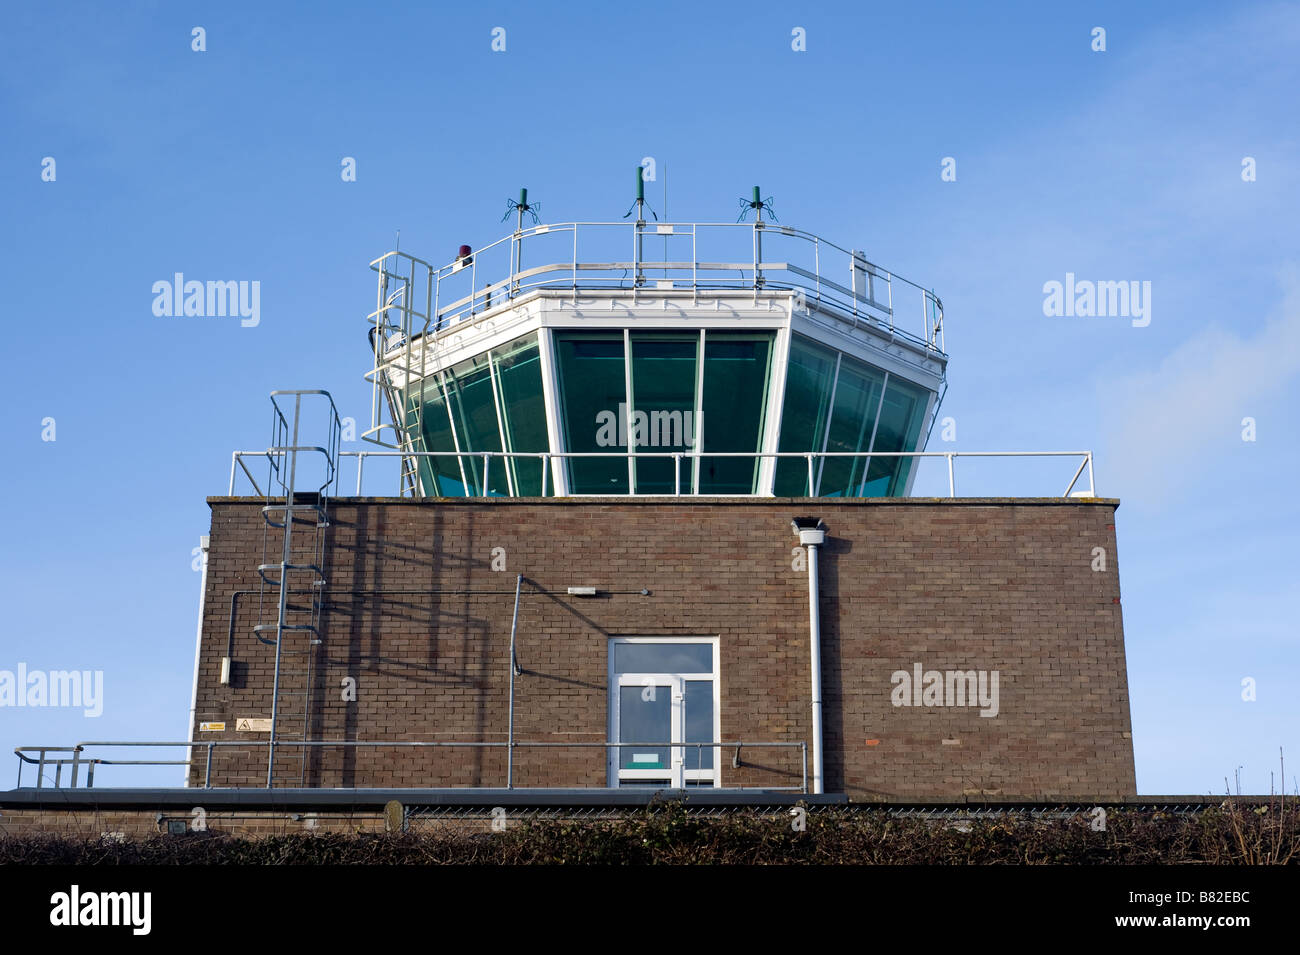 Raf Control Tower Stock Photos & Raf Control Tower Stock Images ...